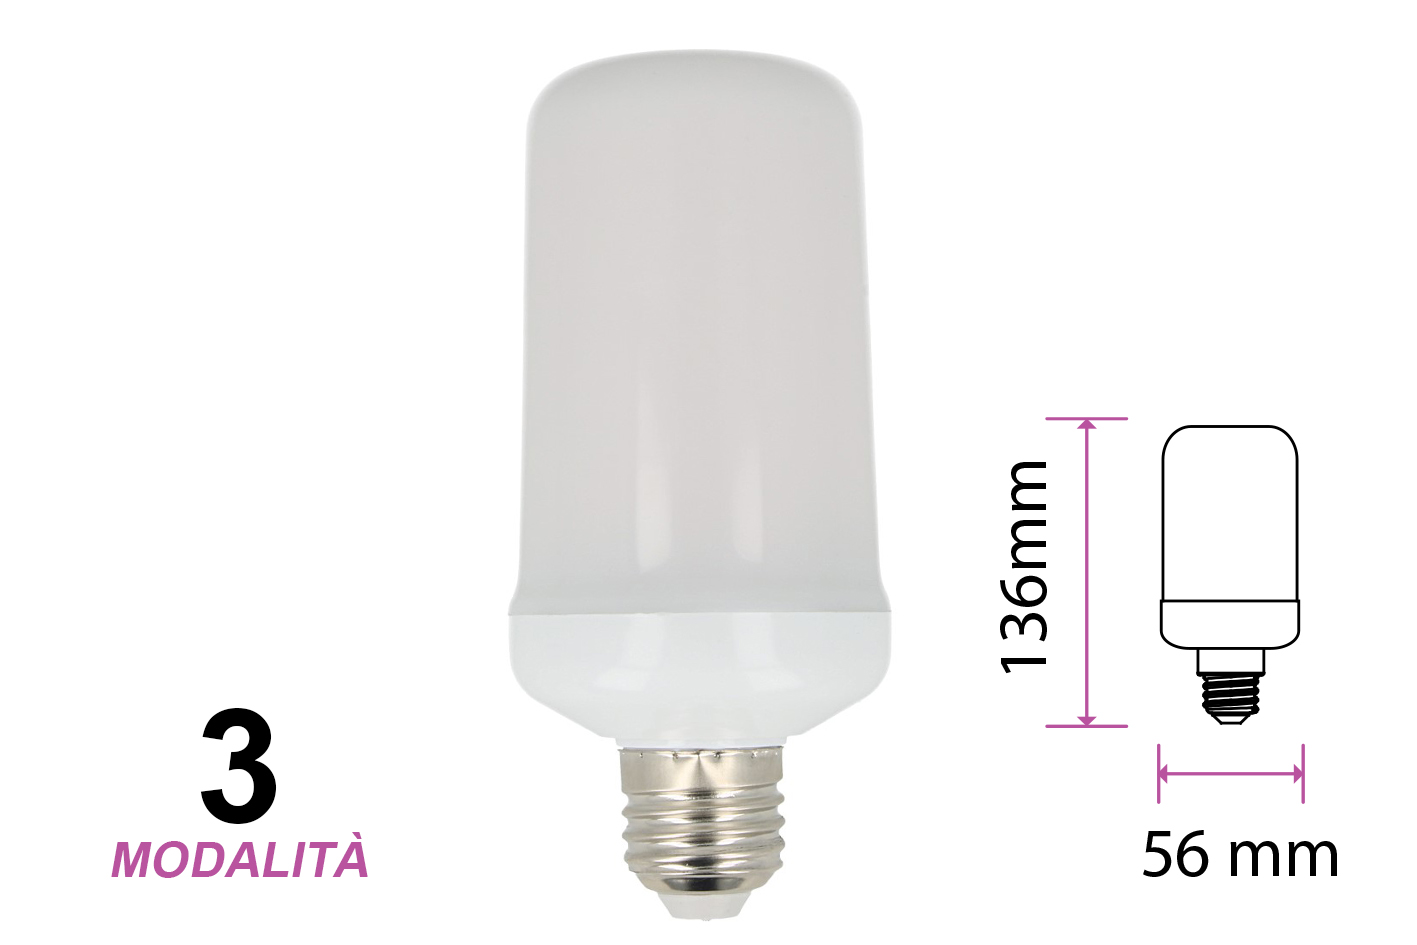 Mondoled mondo led l e shop dei led di qualità lampada led